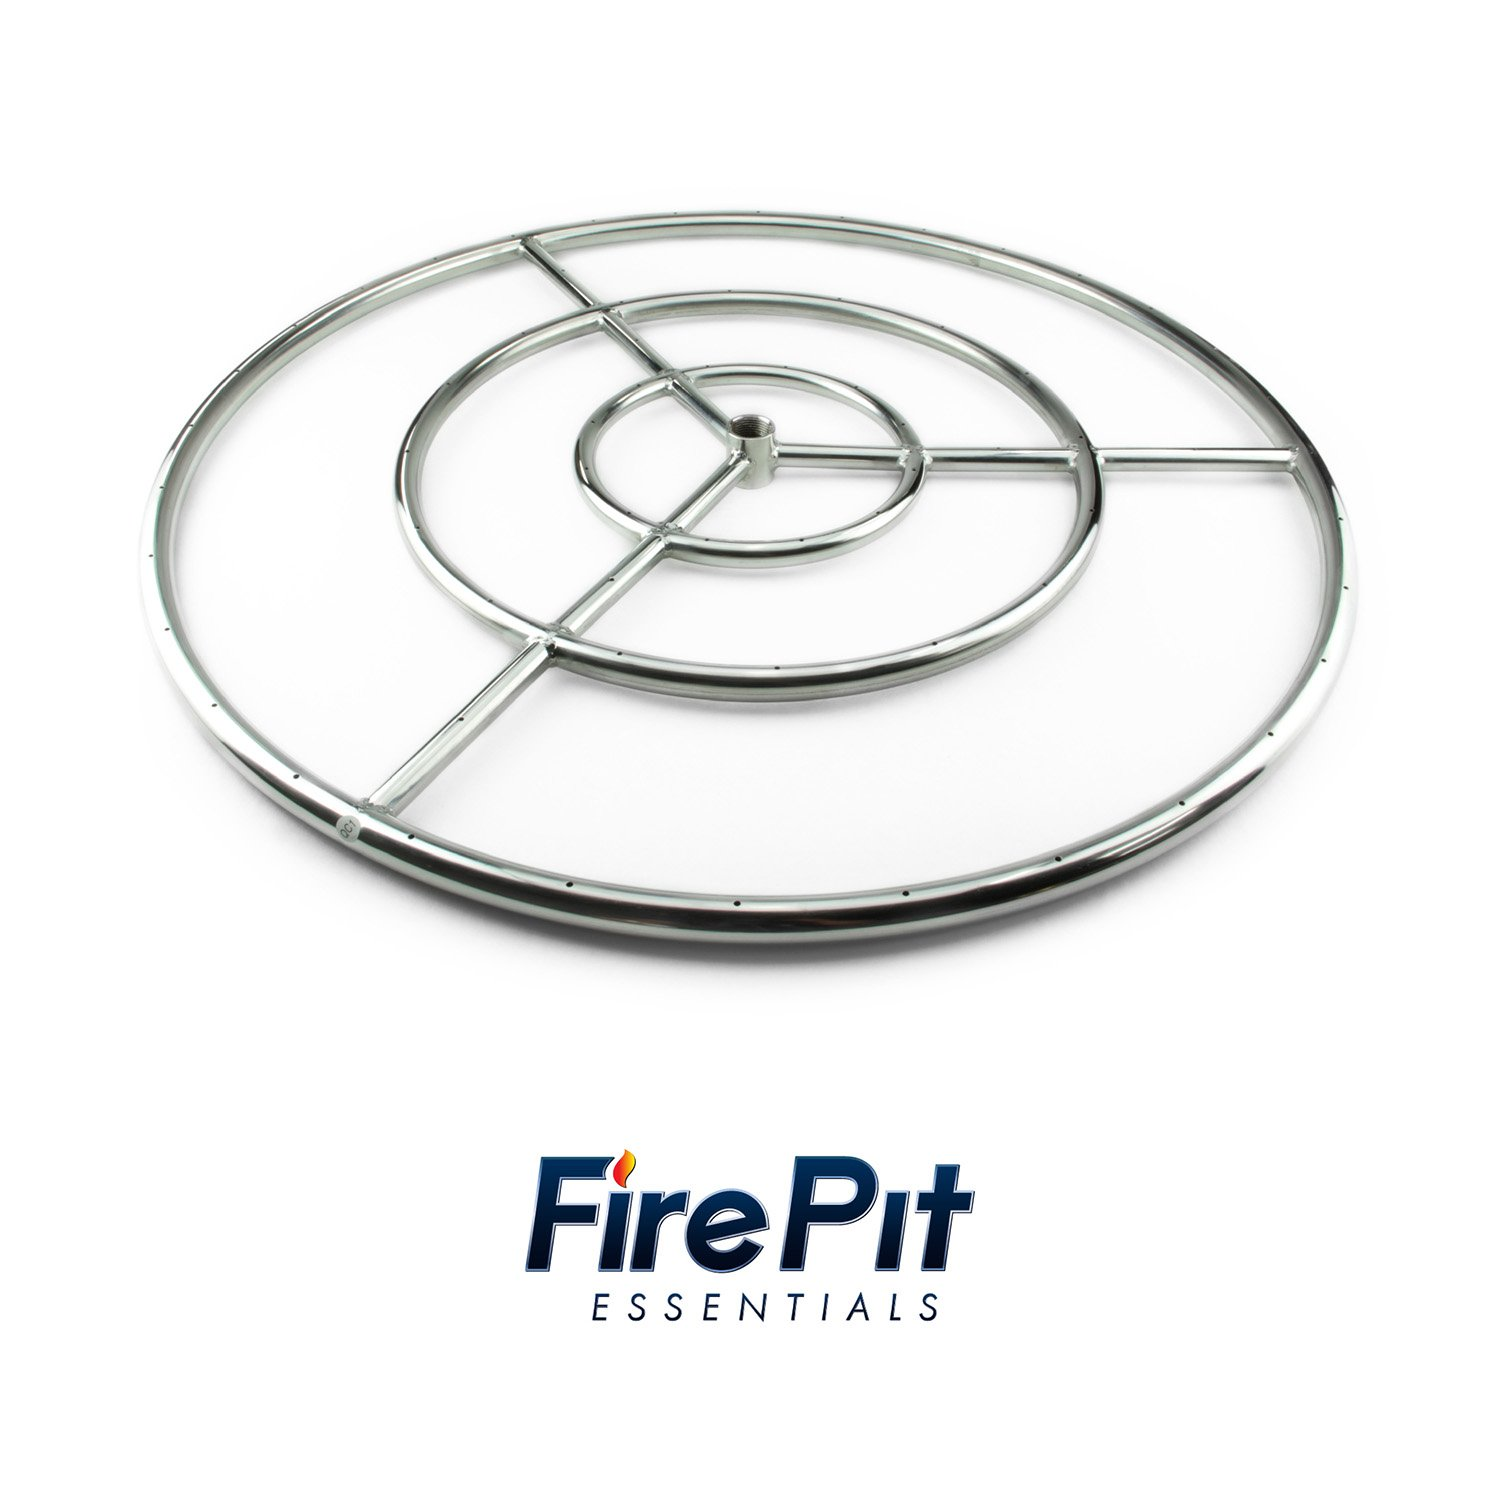 Fire Ring Burner for Fire Pits and Fireplaces | 30 Inch, Stainless Steel Burner | Includes Connector Kit